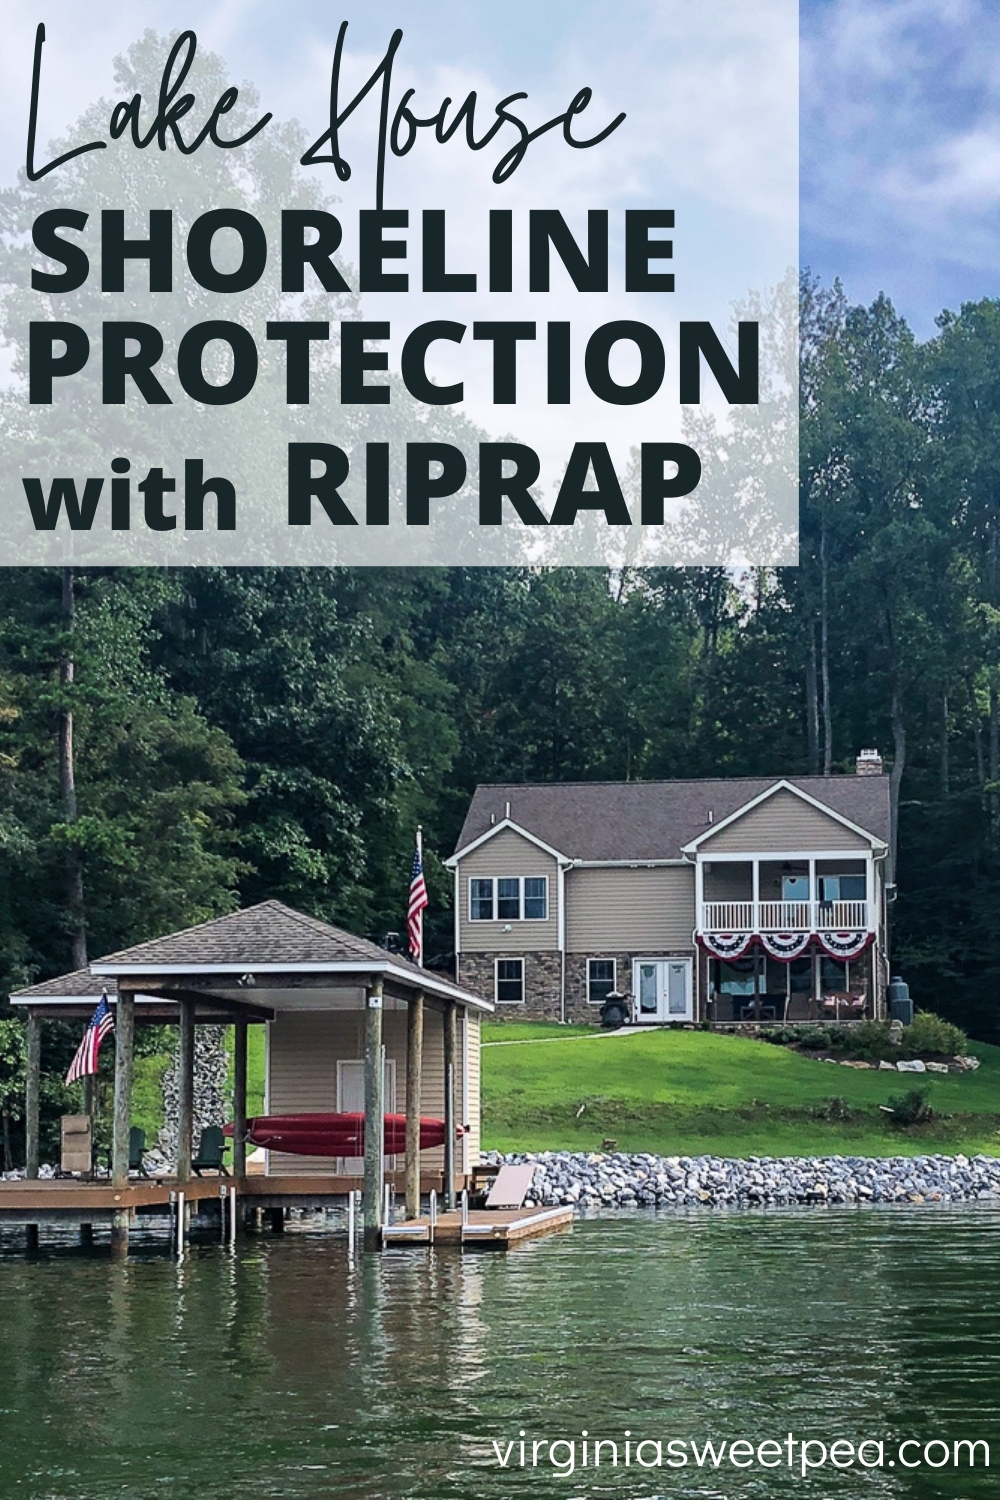 Riprap for Shoreline Protection - A home on Smith Mountain Lake, VA gets new riprap to protect the shoreline from erosion.  #riprap #smithmountainlakeva #shorelineprotection via @spaula